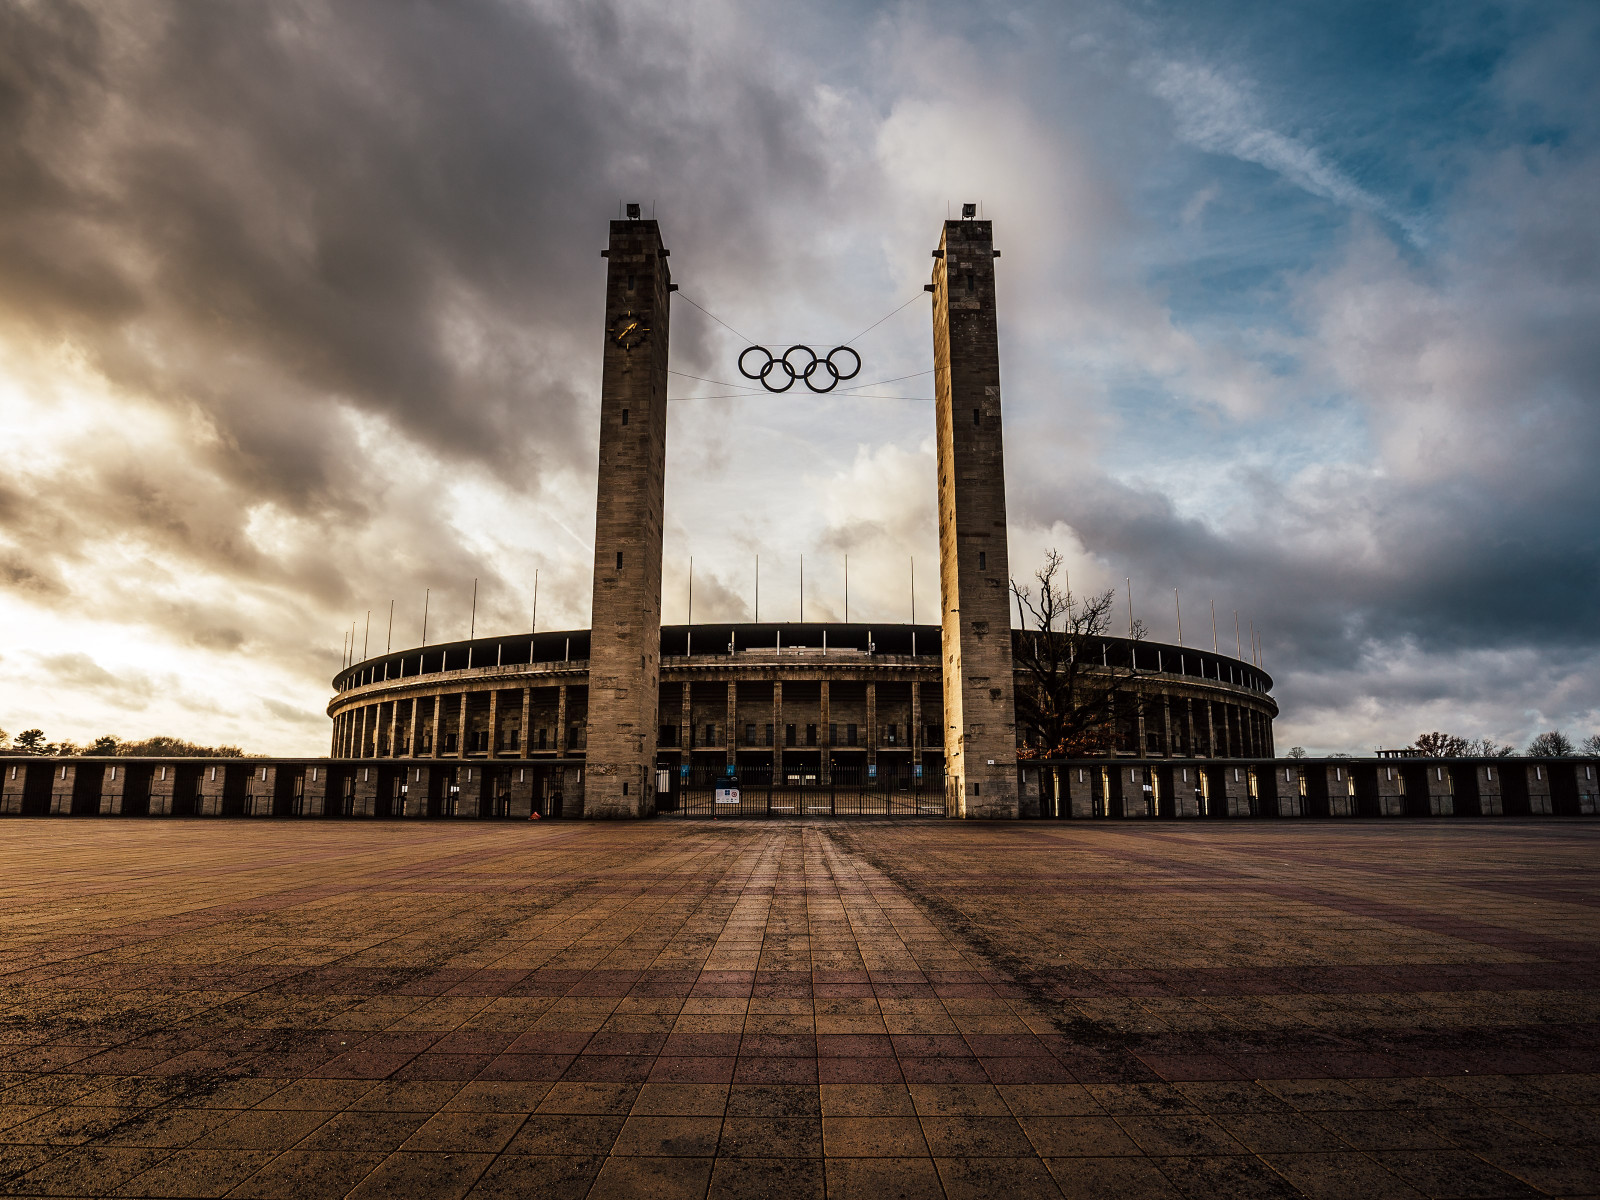 The Olympiastadion from Berlin | 1600x1200 wallpaper